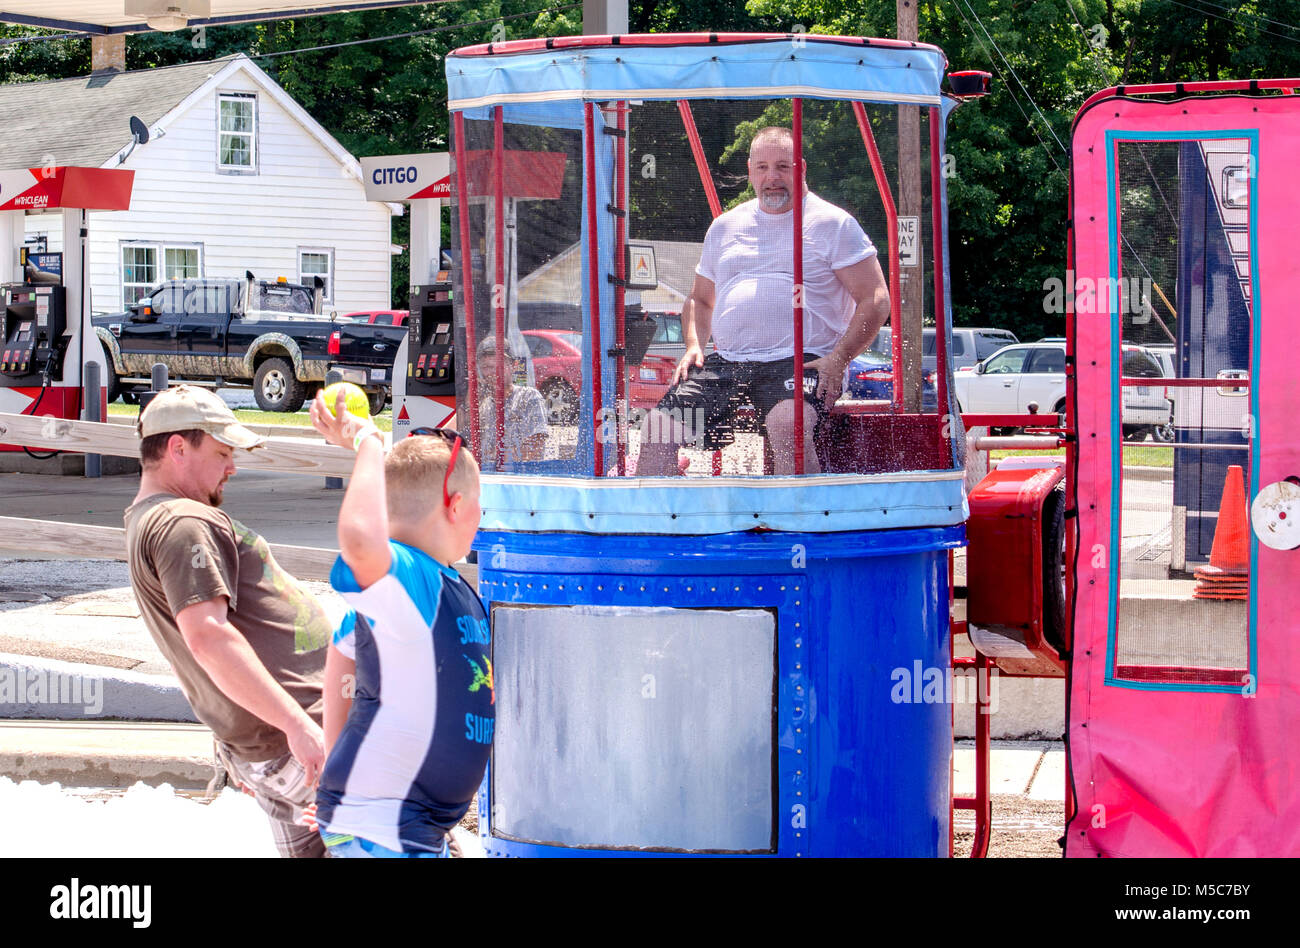 Aug 5, 2017 Michigan USA; a boy prepares to throw a ball, attempting to dunk a man in this wet dunk tank at the - Stock Image